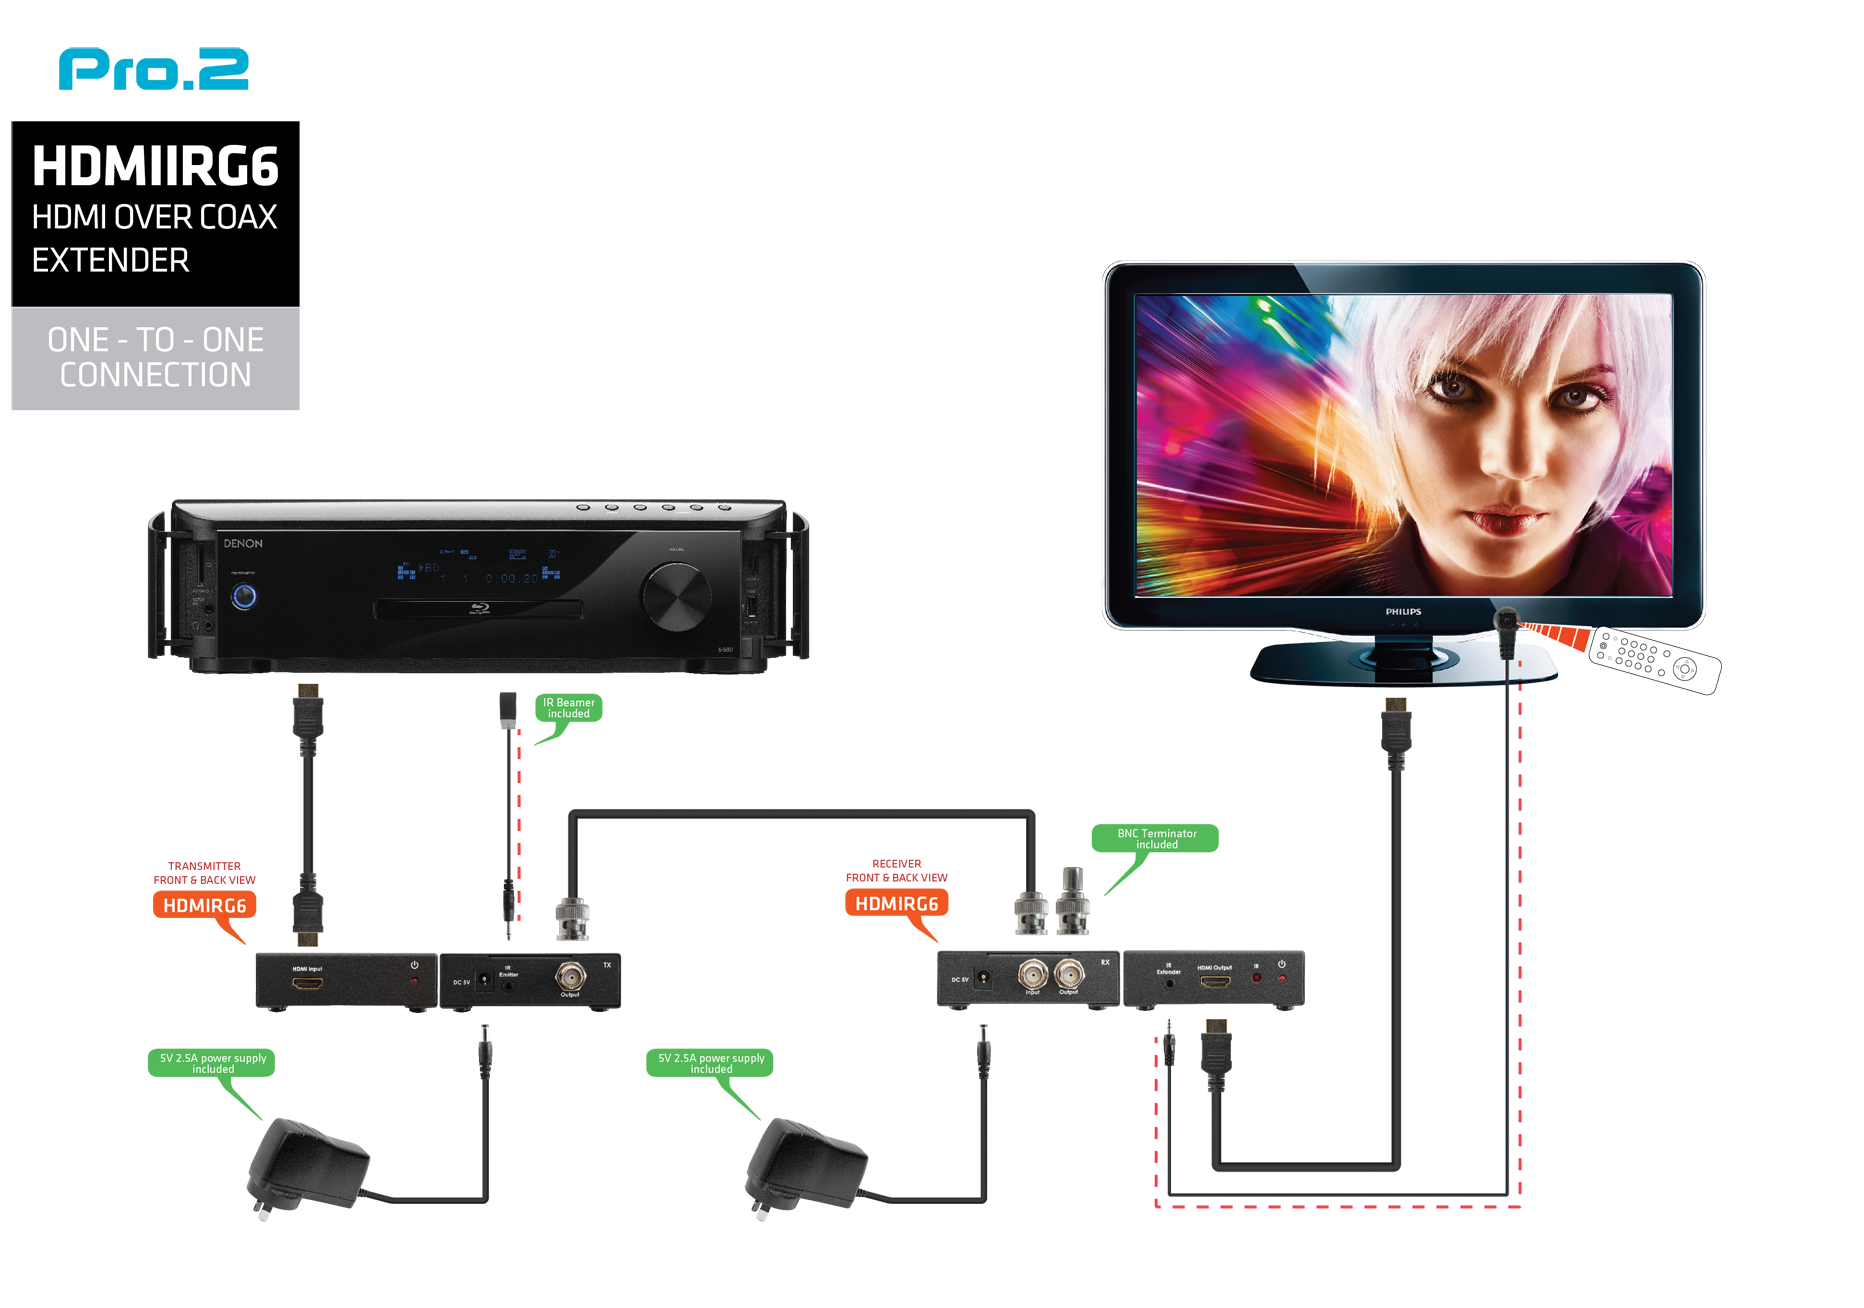 Hdmi Product Categories Pro2 2016 Rs232 Wiring Diagram For Surround One To Extender Configuration Connection